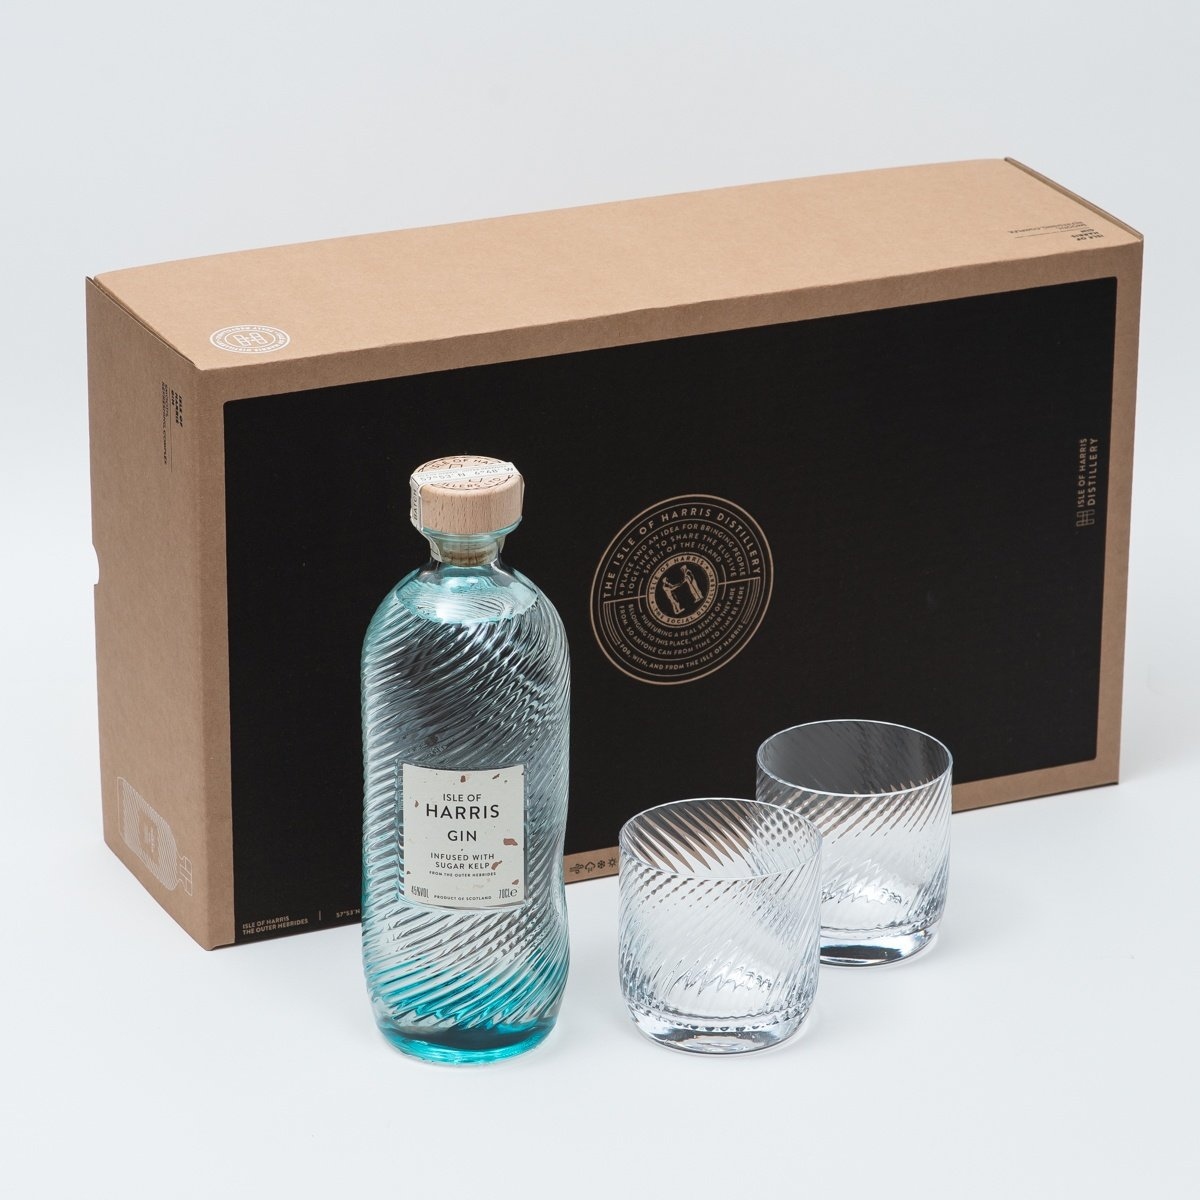 Photo of Isle of Harris gift-set. 1 bottle of gin and two bespoke glass tumblers.